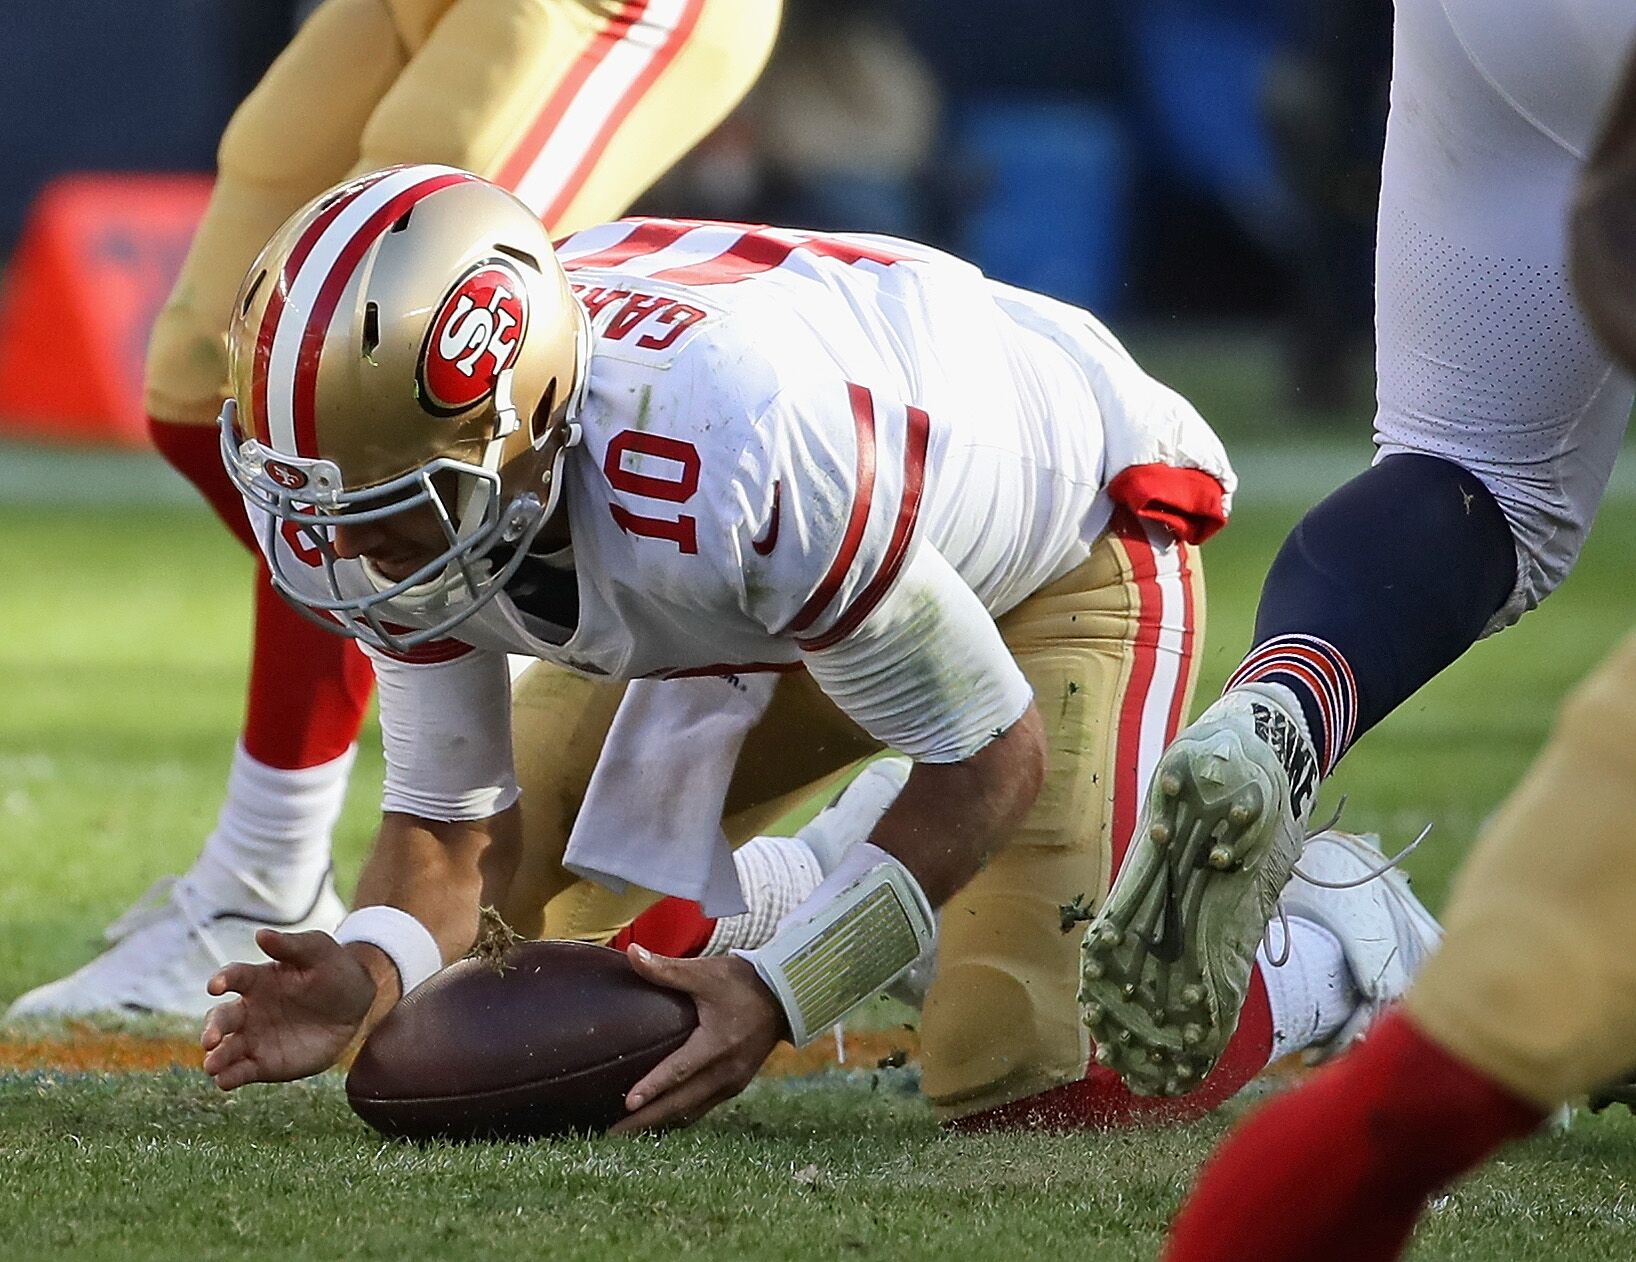 e0c78b2b33f Jimmy Garoppolo  The one thing the 49ers quarterback has to improve on